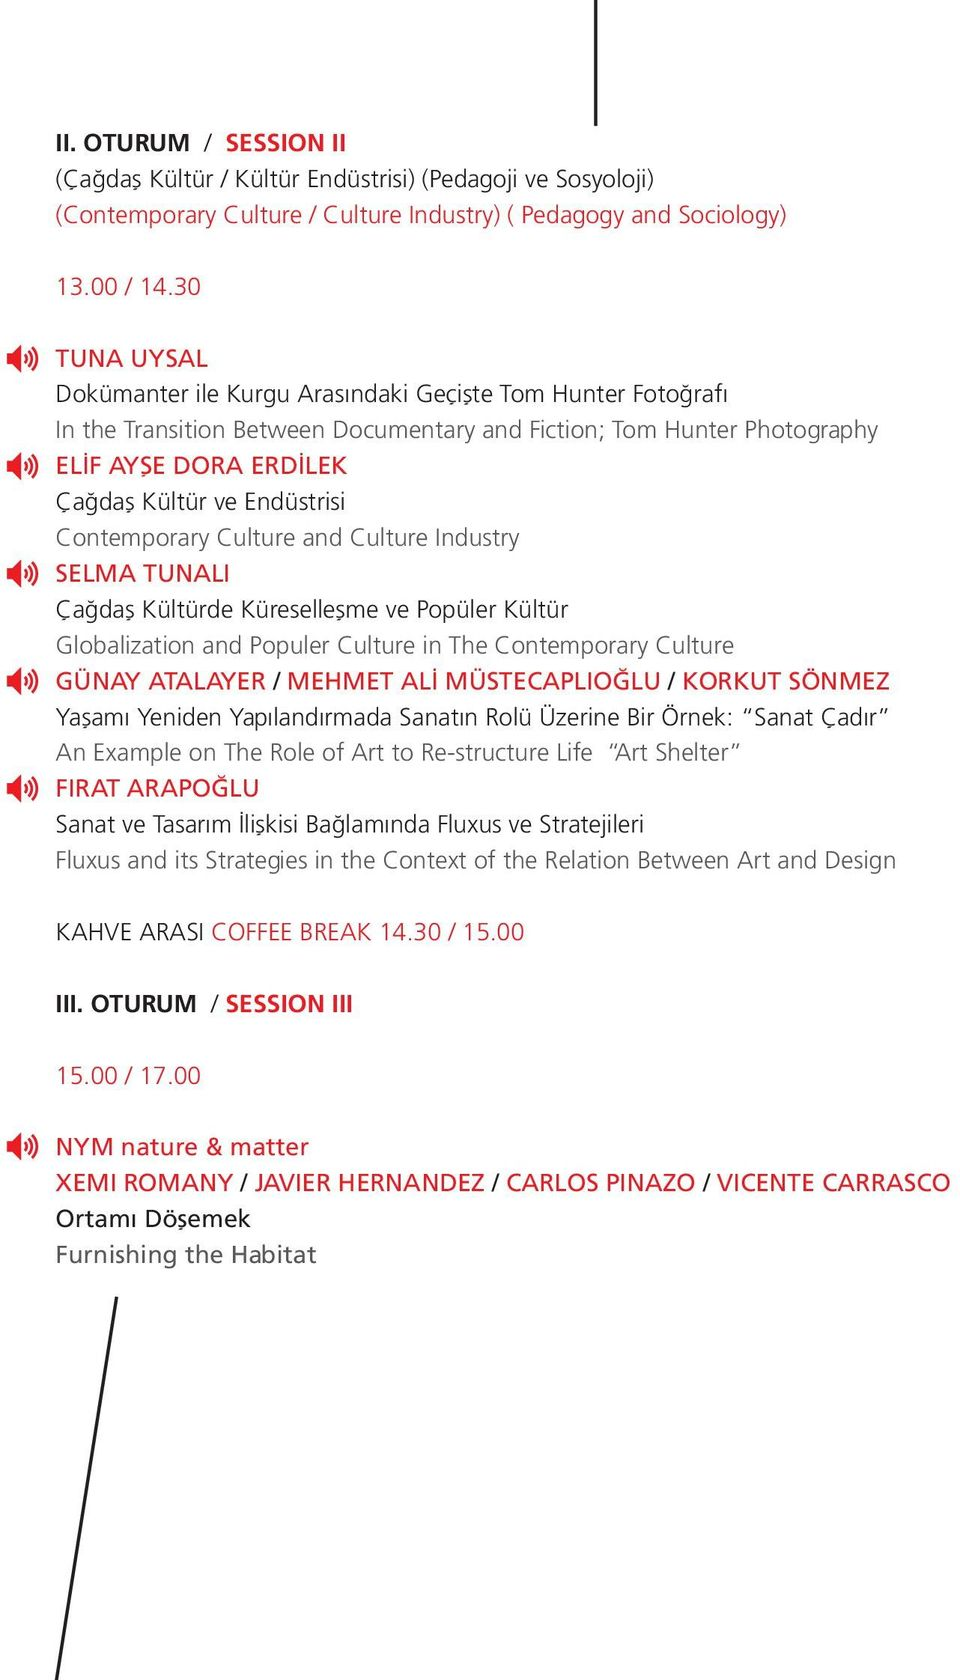 Contemporary Culture and Culture Industry SELMA TUNALI Çağdaş Kültürde Küreselleşme ve Popüler Kültür Globalization and Populer Culture in The Contemporary Culture GÜNAY ATALAYER / MEHMET ALİ